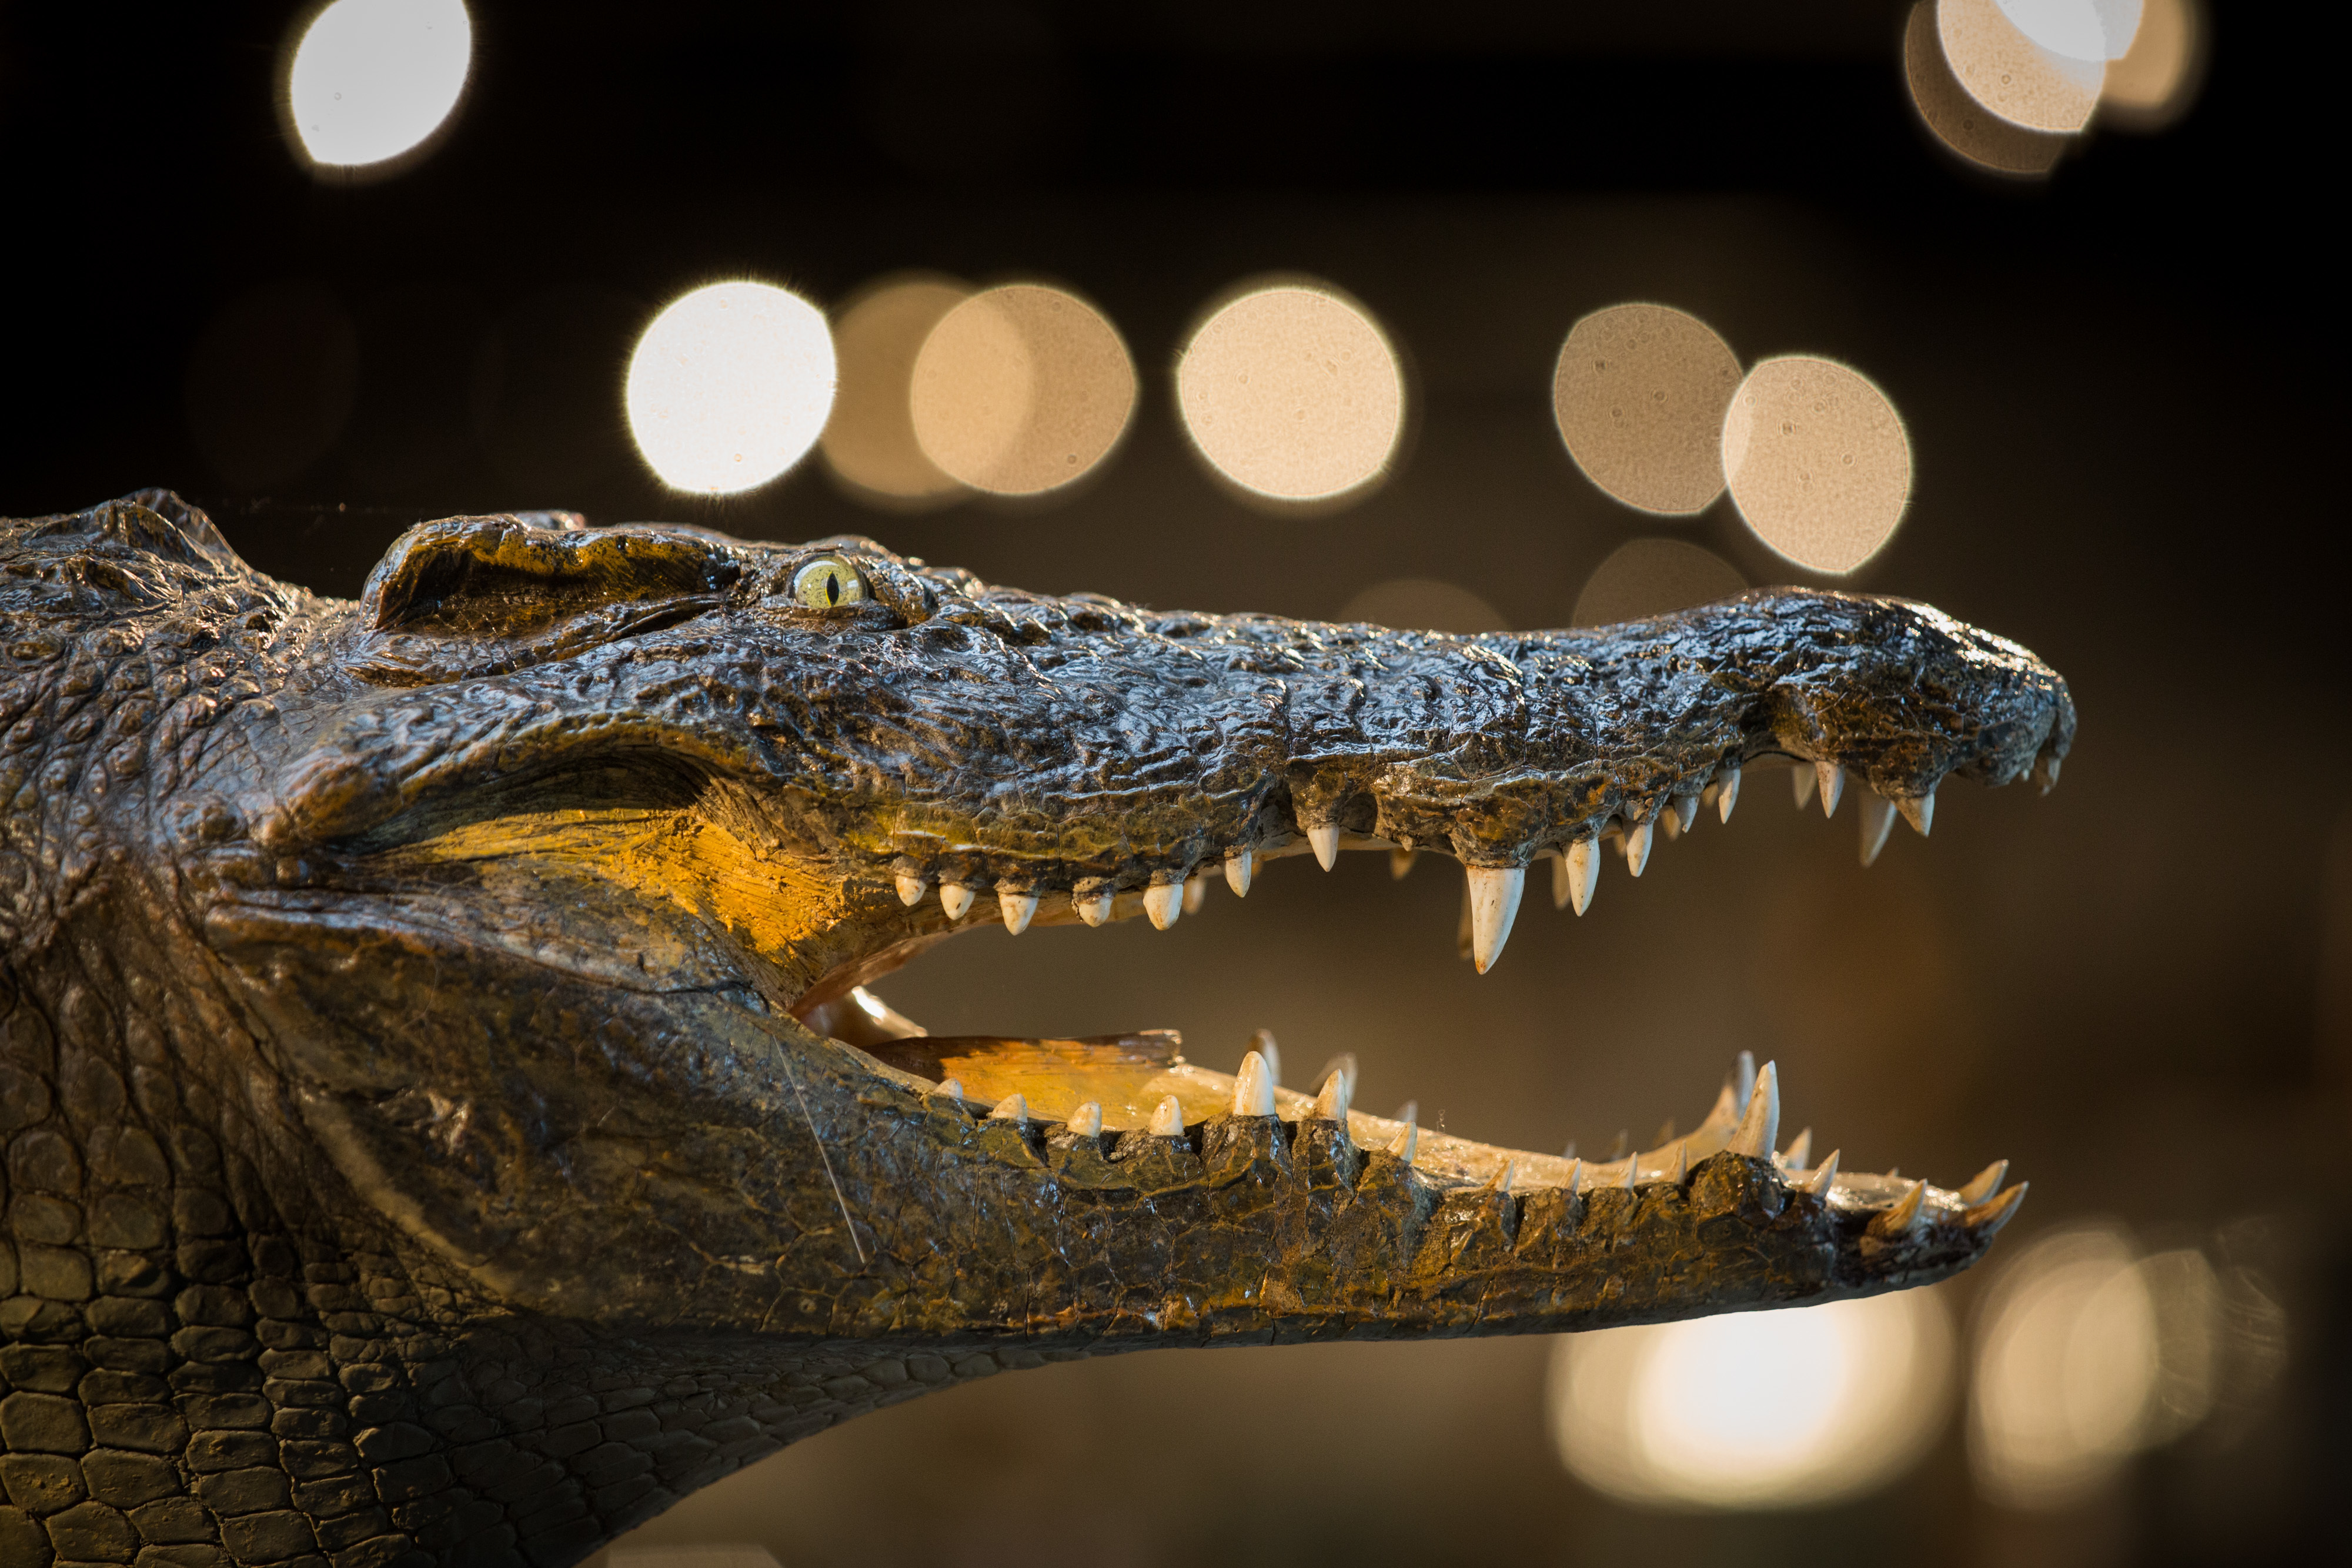 BILLINGSHURST, ENGLAND - NOVEMBER 19:  The head of a full crocodile, estimated to sell for 2500-3000 GBP, is displayed at Summers Place Auctions on November 19, 2015 in Billingshurst, England.  Summers Place Auctions Third Evolution Sale of taxidermy, fossils, and minerals will take place on November 25.  (Photo by Rob Stothard/Getty Images)